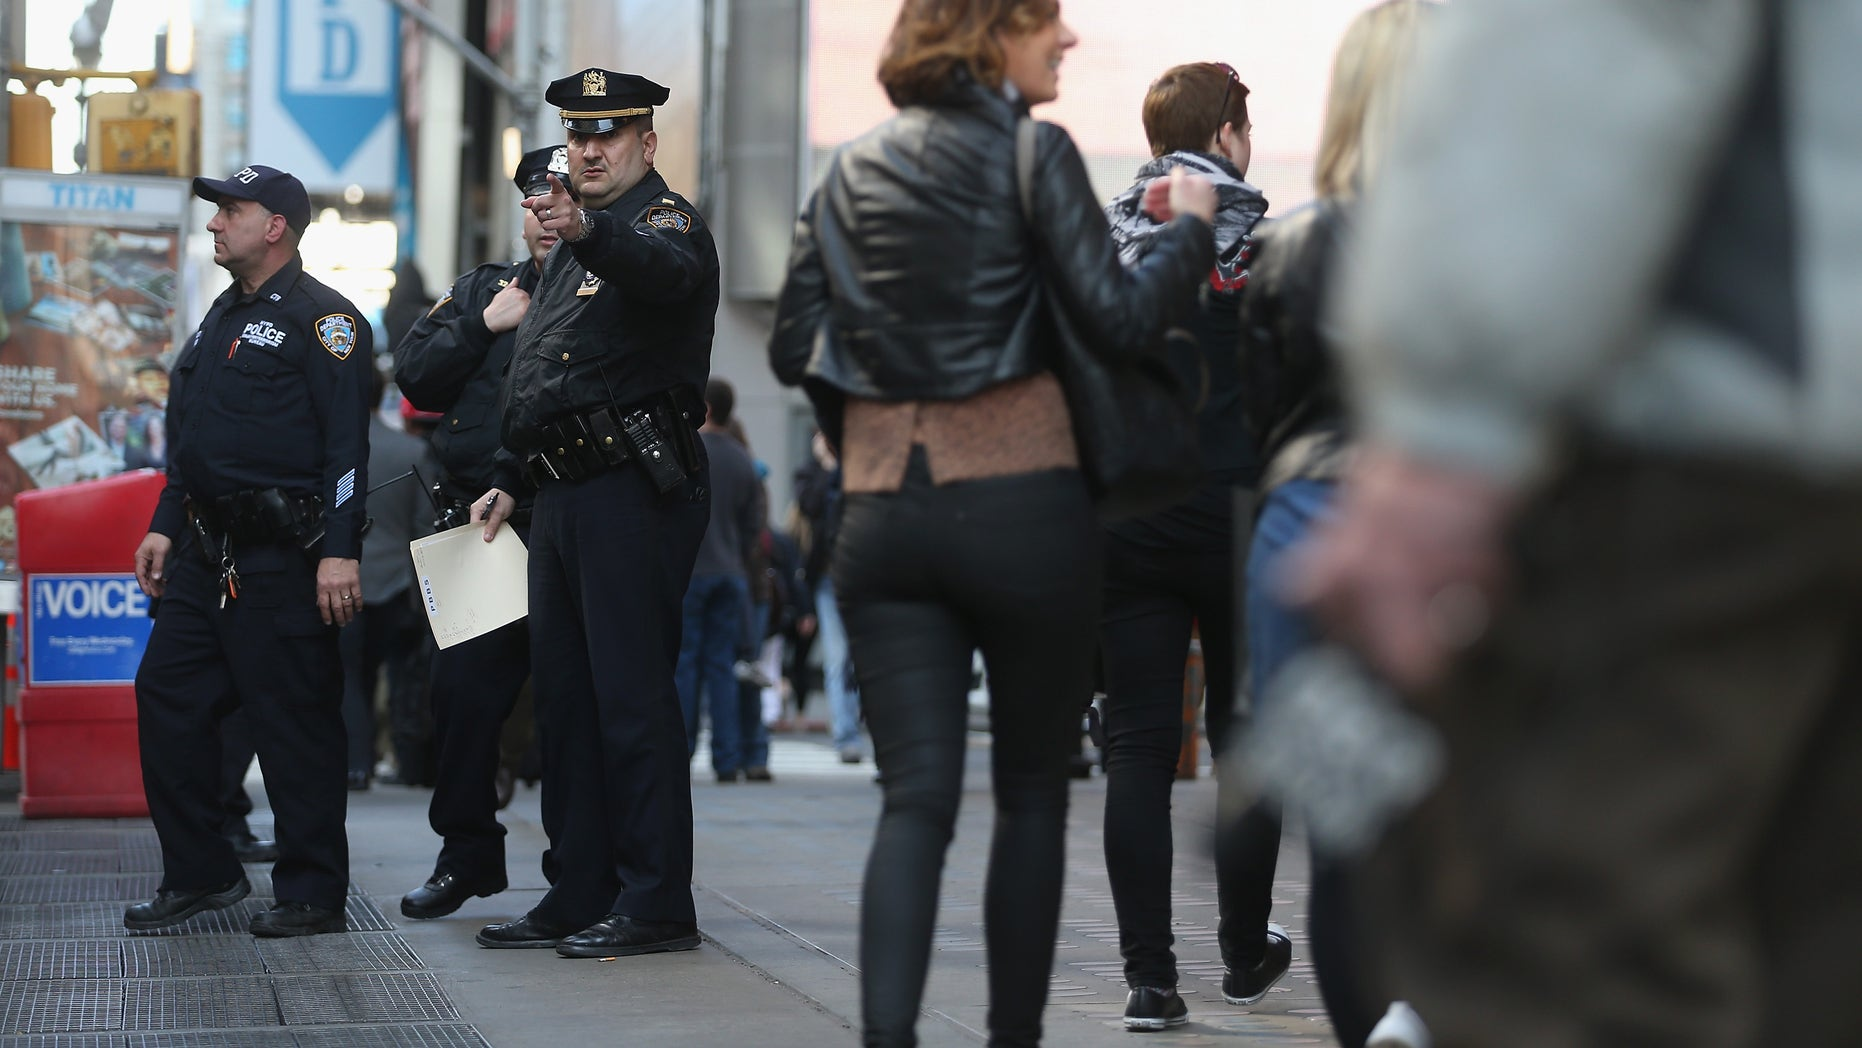 NEW YORK, NY - APRIL 15:  New York Police Department officers gather at the edge of Times Square in Manhattan on April 15, 2013 in New York City. The city has announced it will implement heightened security measures in response to today's bombings at the Boston Marathon.  (Photo by Mario Tama/Getty Images)